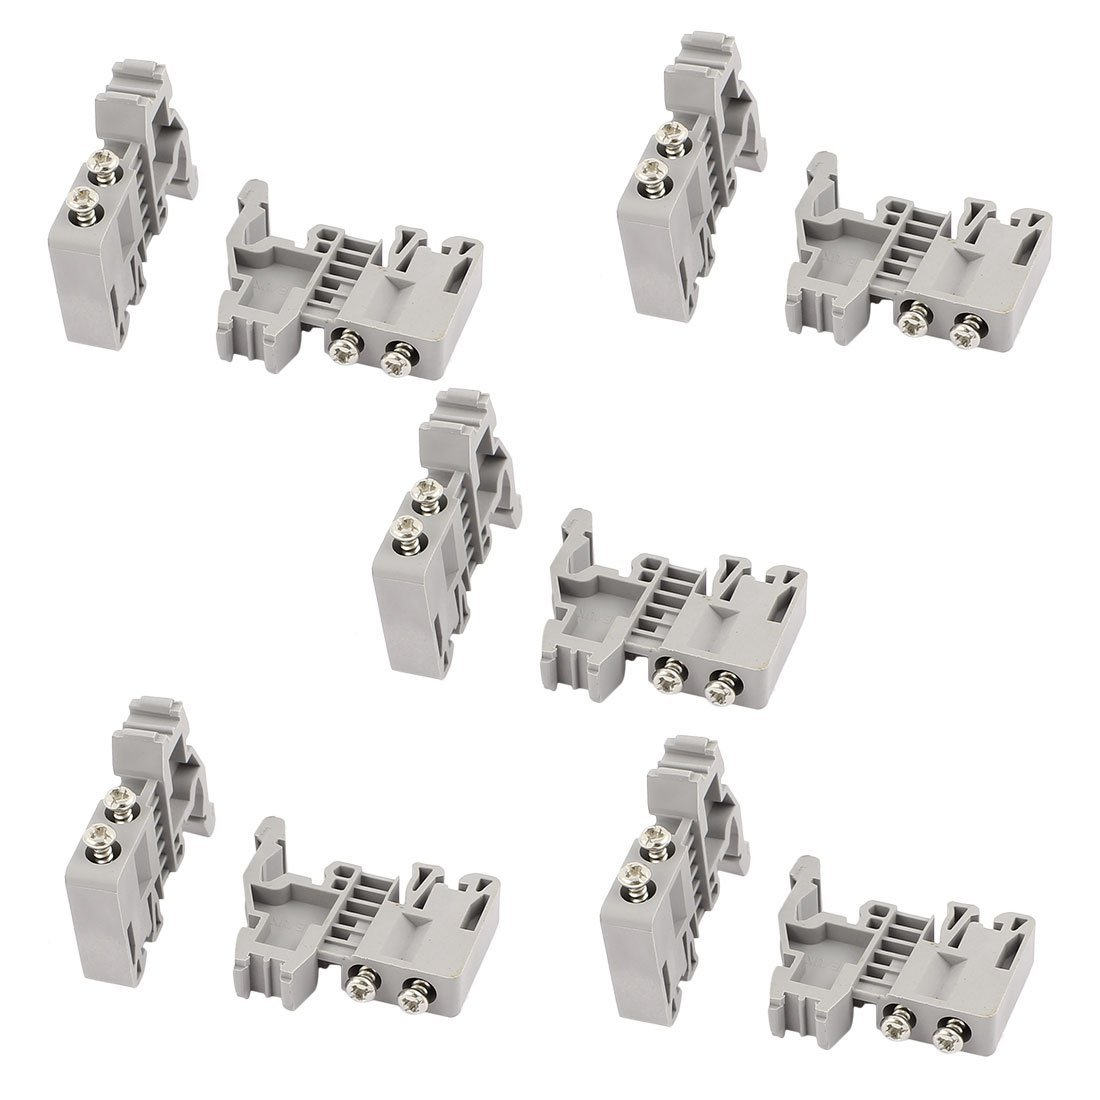 Aexit 10 Pcs E-UK 35mm DIN Rail End Screw Clamp Terminal Fixed Block Gray